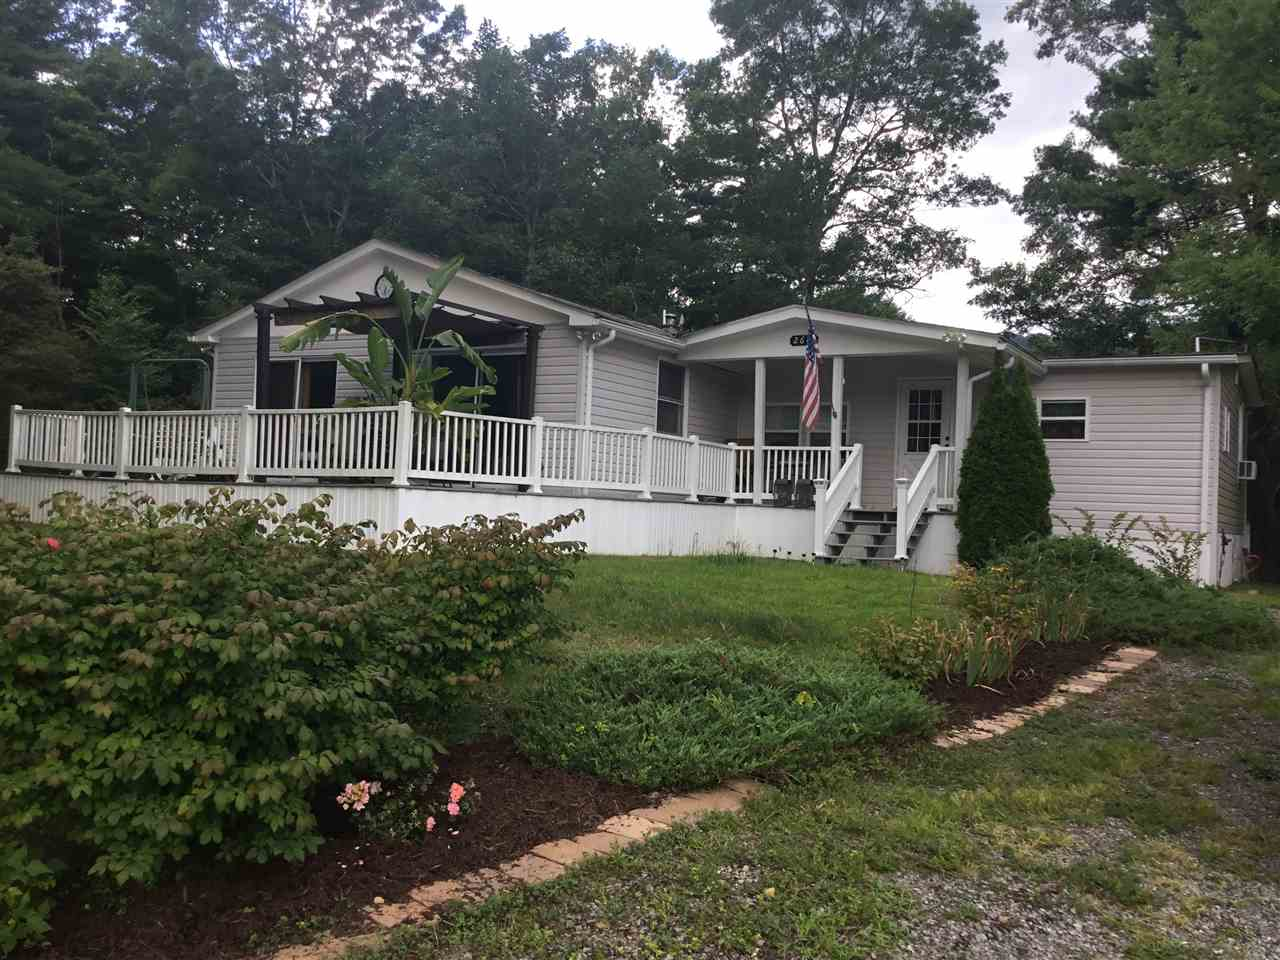 2619 BRUSHY FORK RD, HEAD WATERS, VA 24442